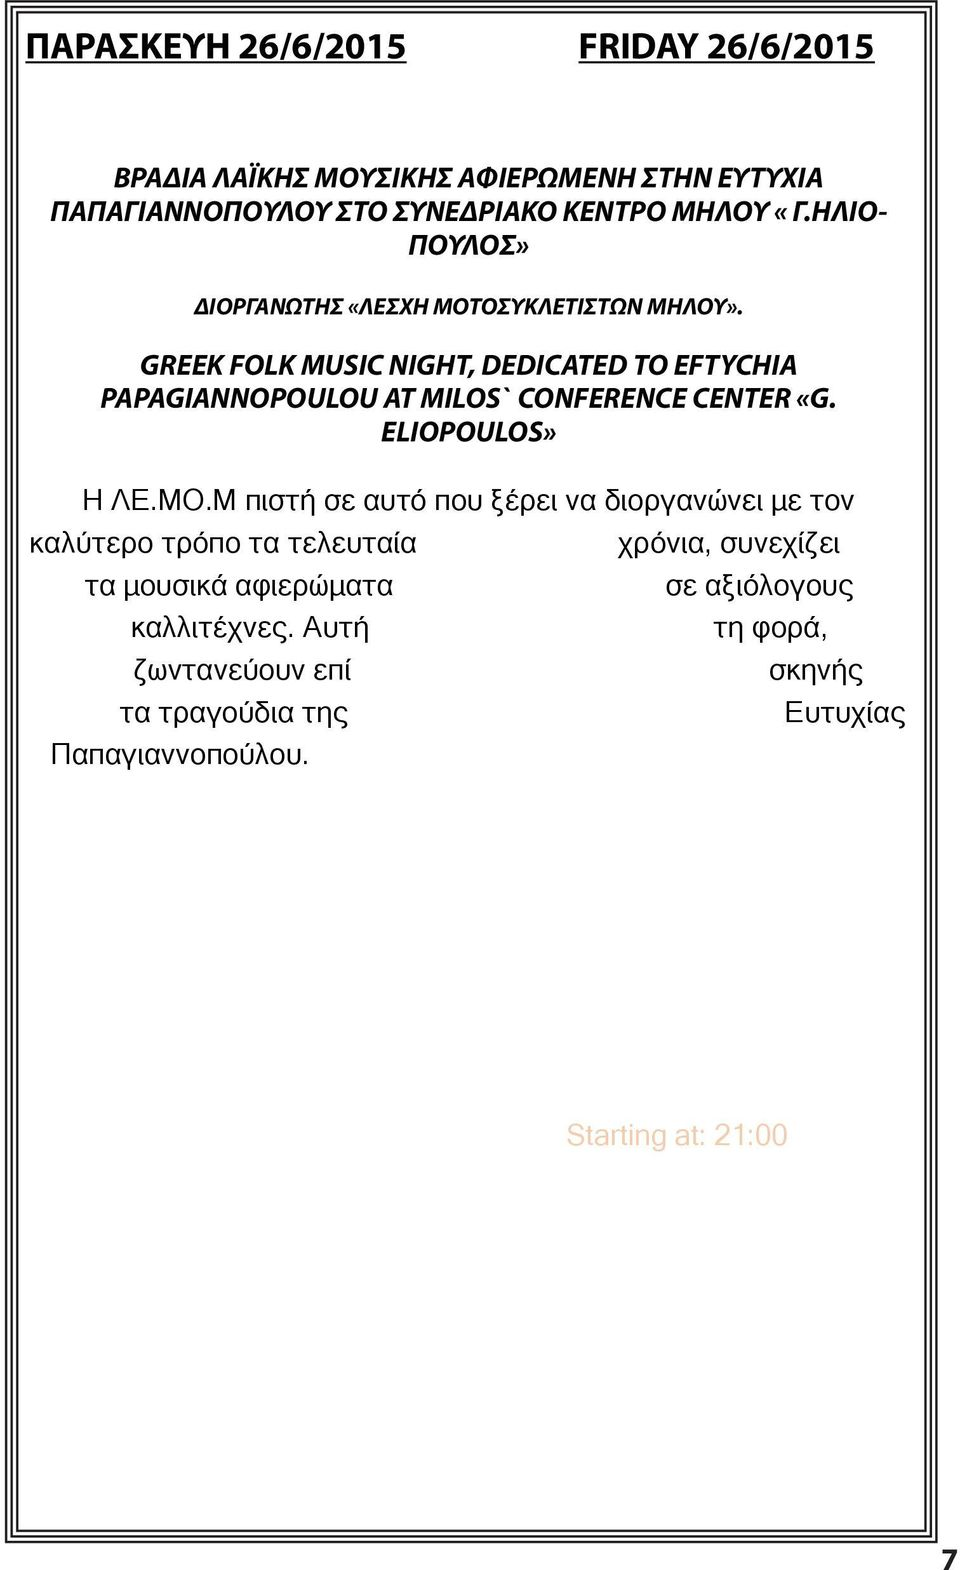 GREEK FOLK MUSIC NIGHT, DEDICATED TO EFTYCHIA PAPAGIANNOPOULOU AT MILOS` CONFERENCE CENTER «G. ELIOPOULOS» Η ΛΕ.ΜΟ.